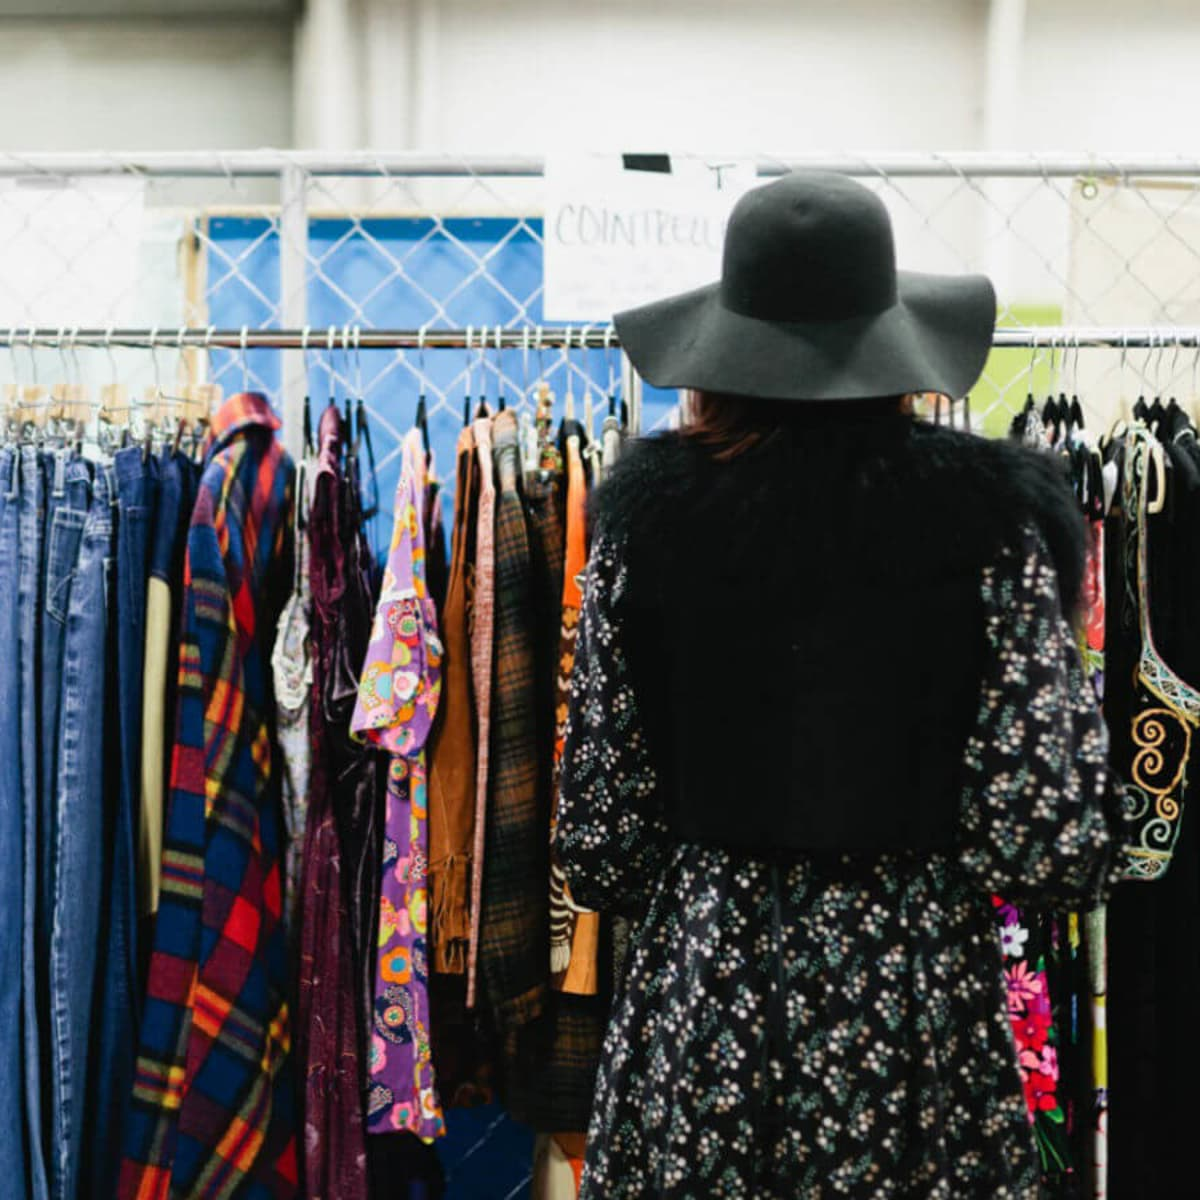 The Dallas Flea